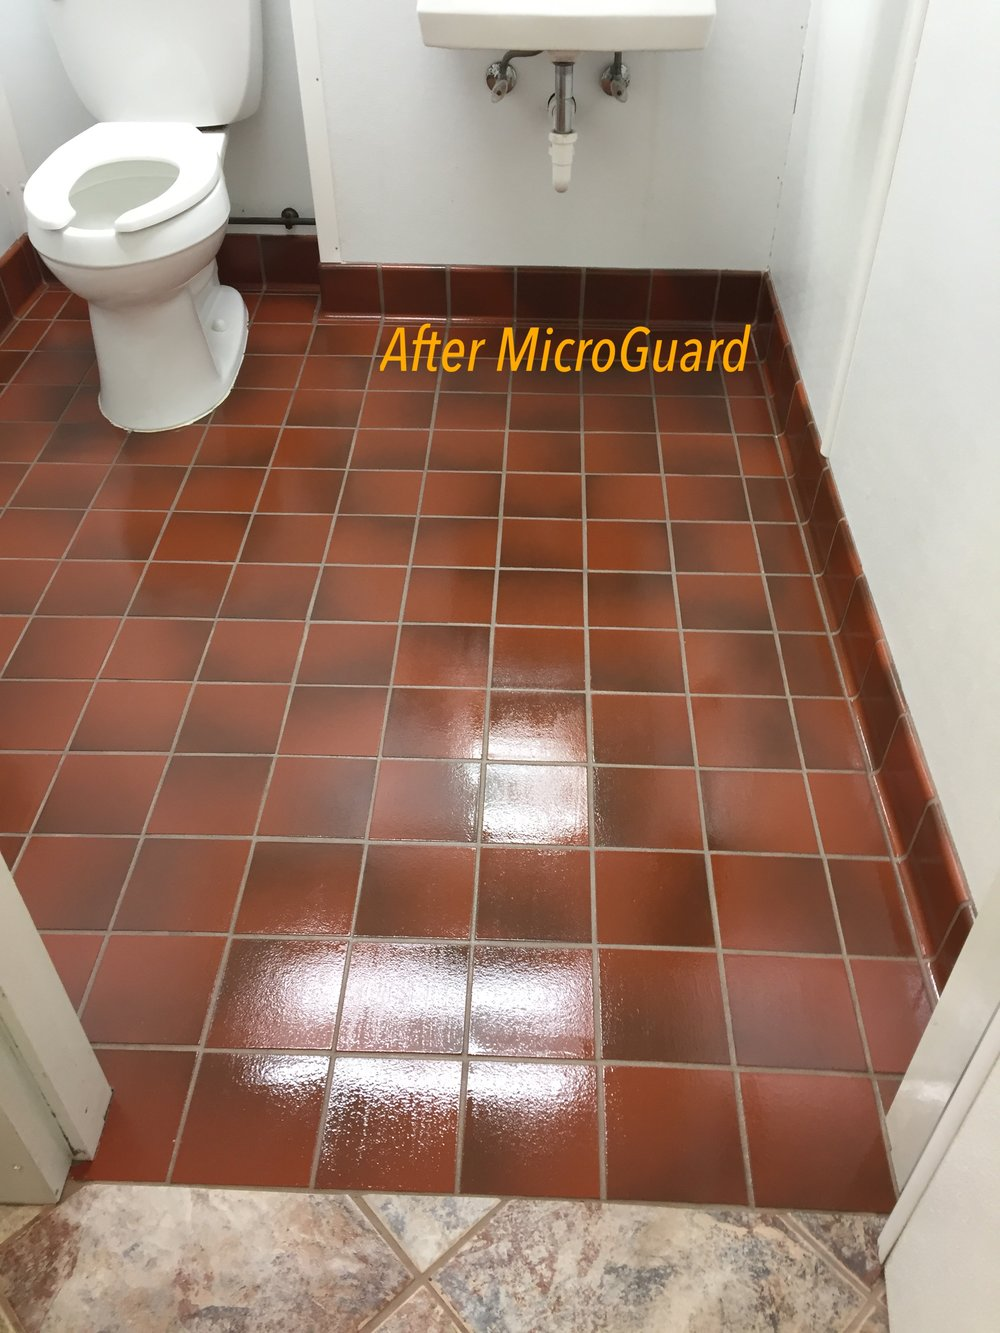 5 Quarry tile after Microguard coating.JPG